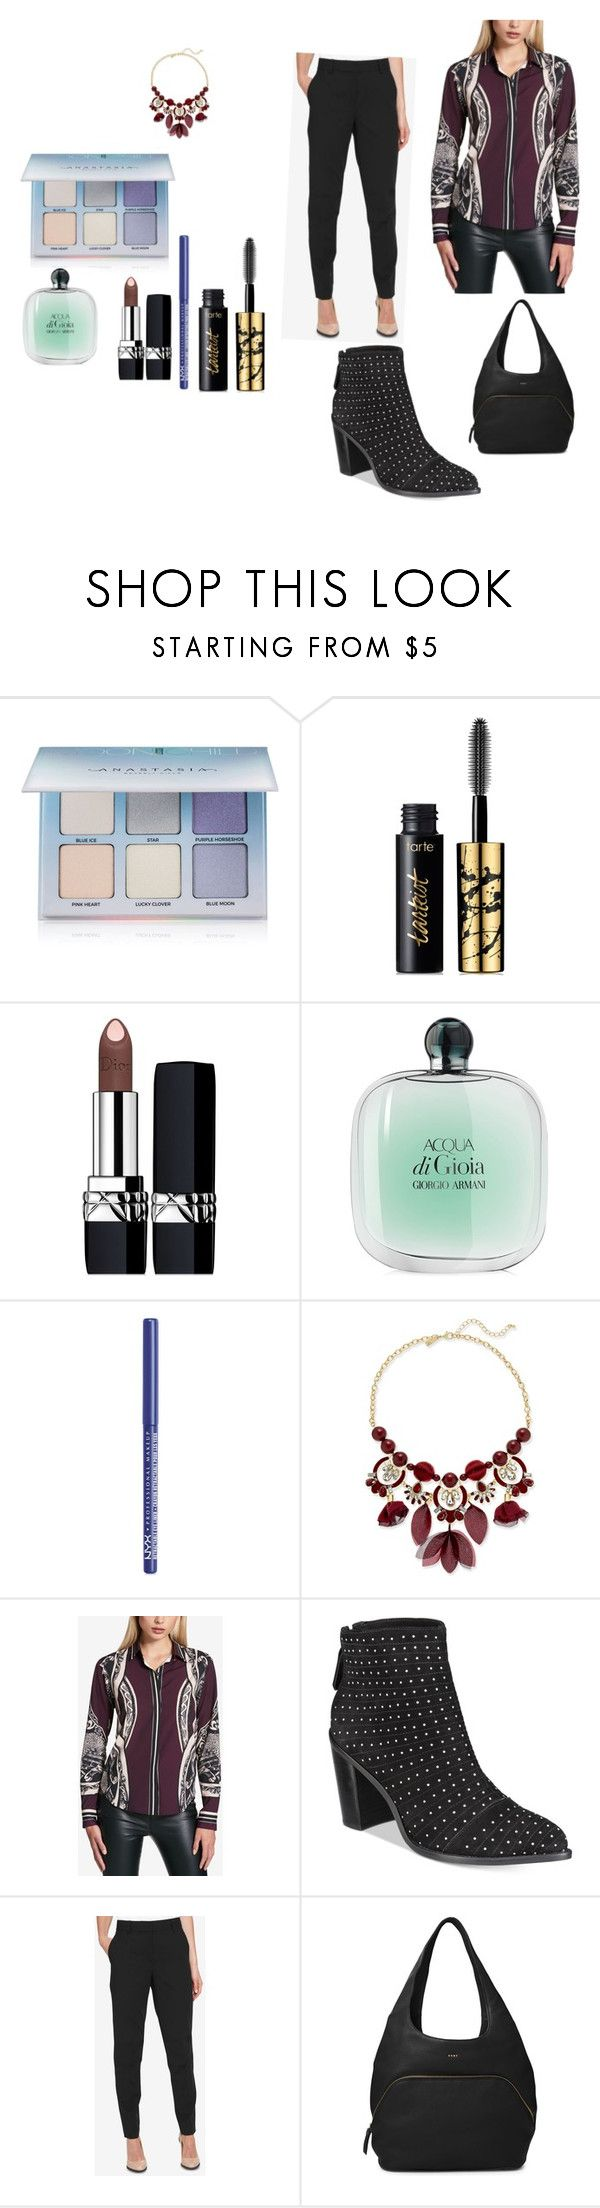 """""""DKNY"""" by chauert ❤ liked on Polyvore featuring Anastasia Beverly Hills, tarte, Christian Dior, Giorgio Armani, NYX, INC International Concepts and DKNY"""